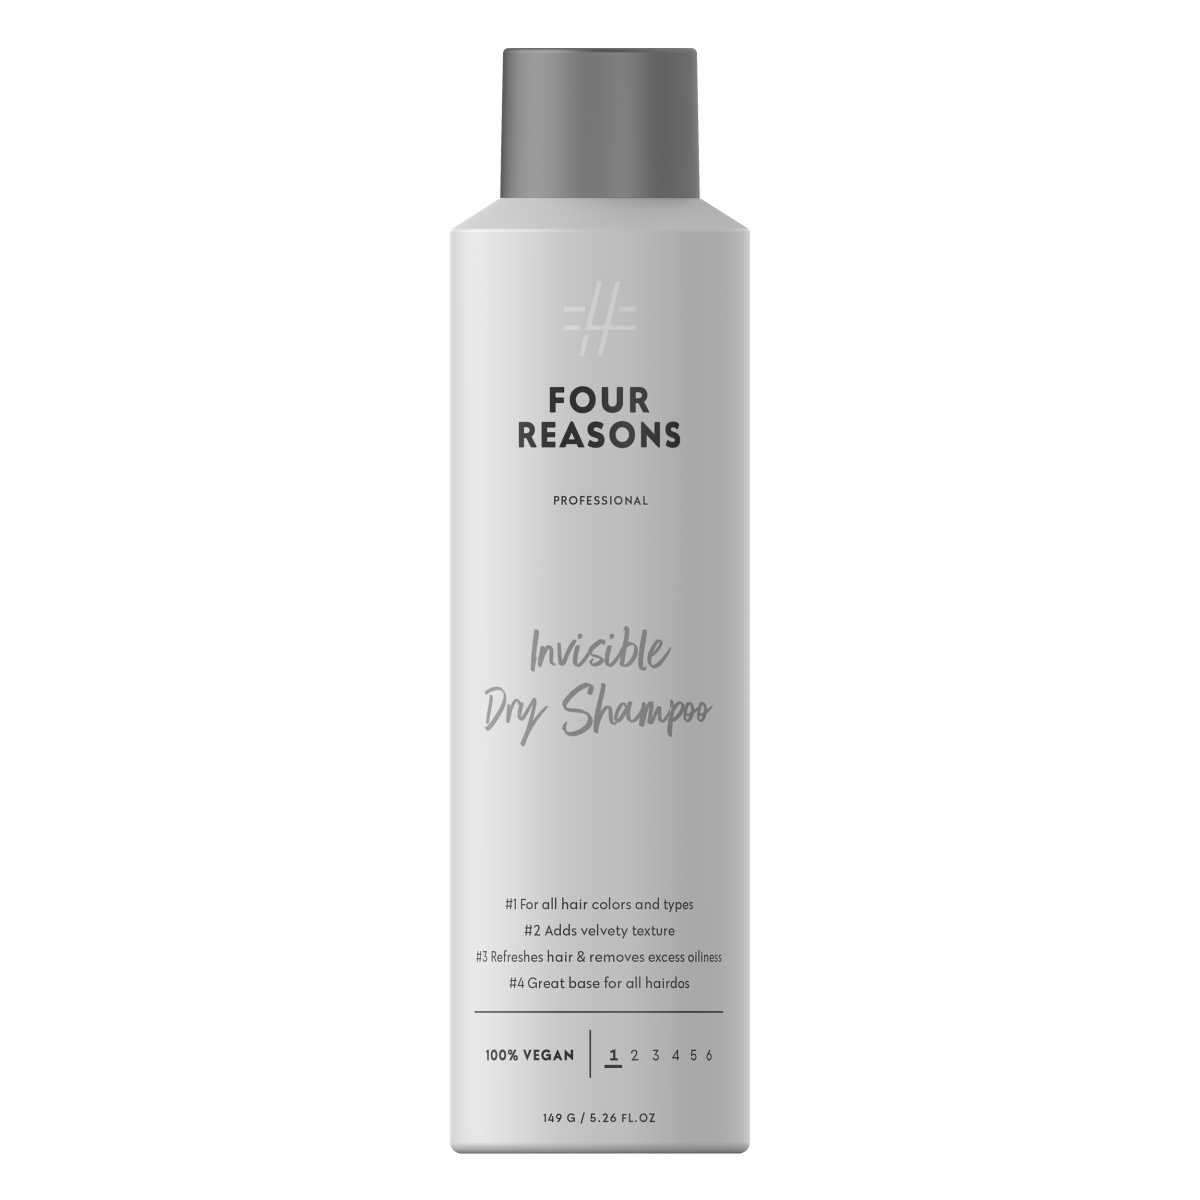 Four-Reasons-Professional-Invisible-Dry-Shampoo